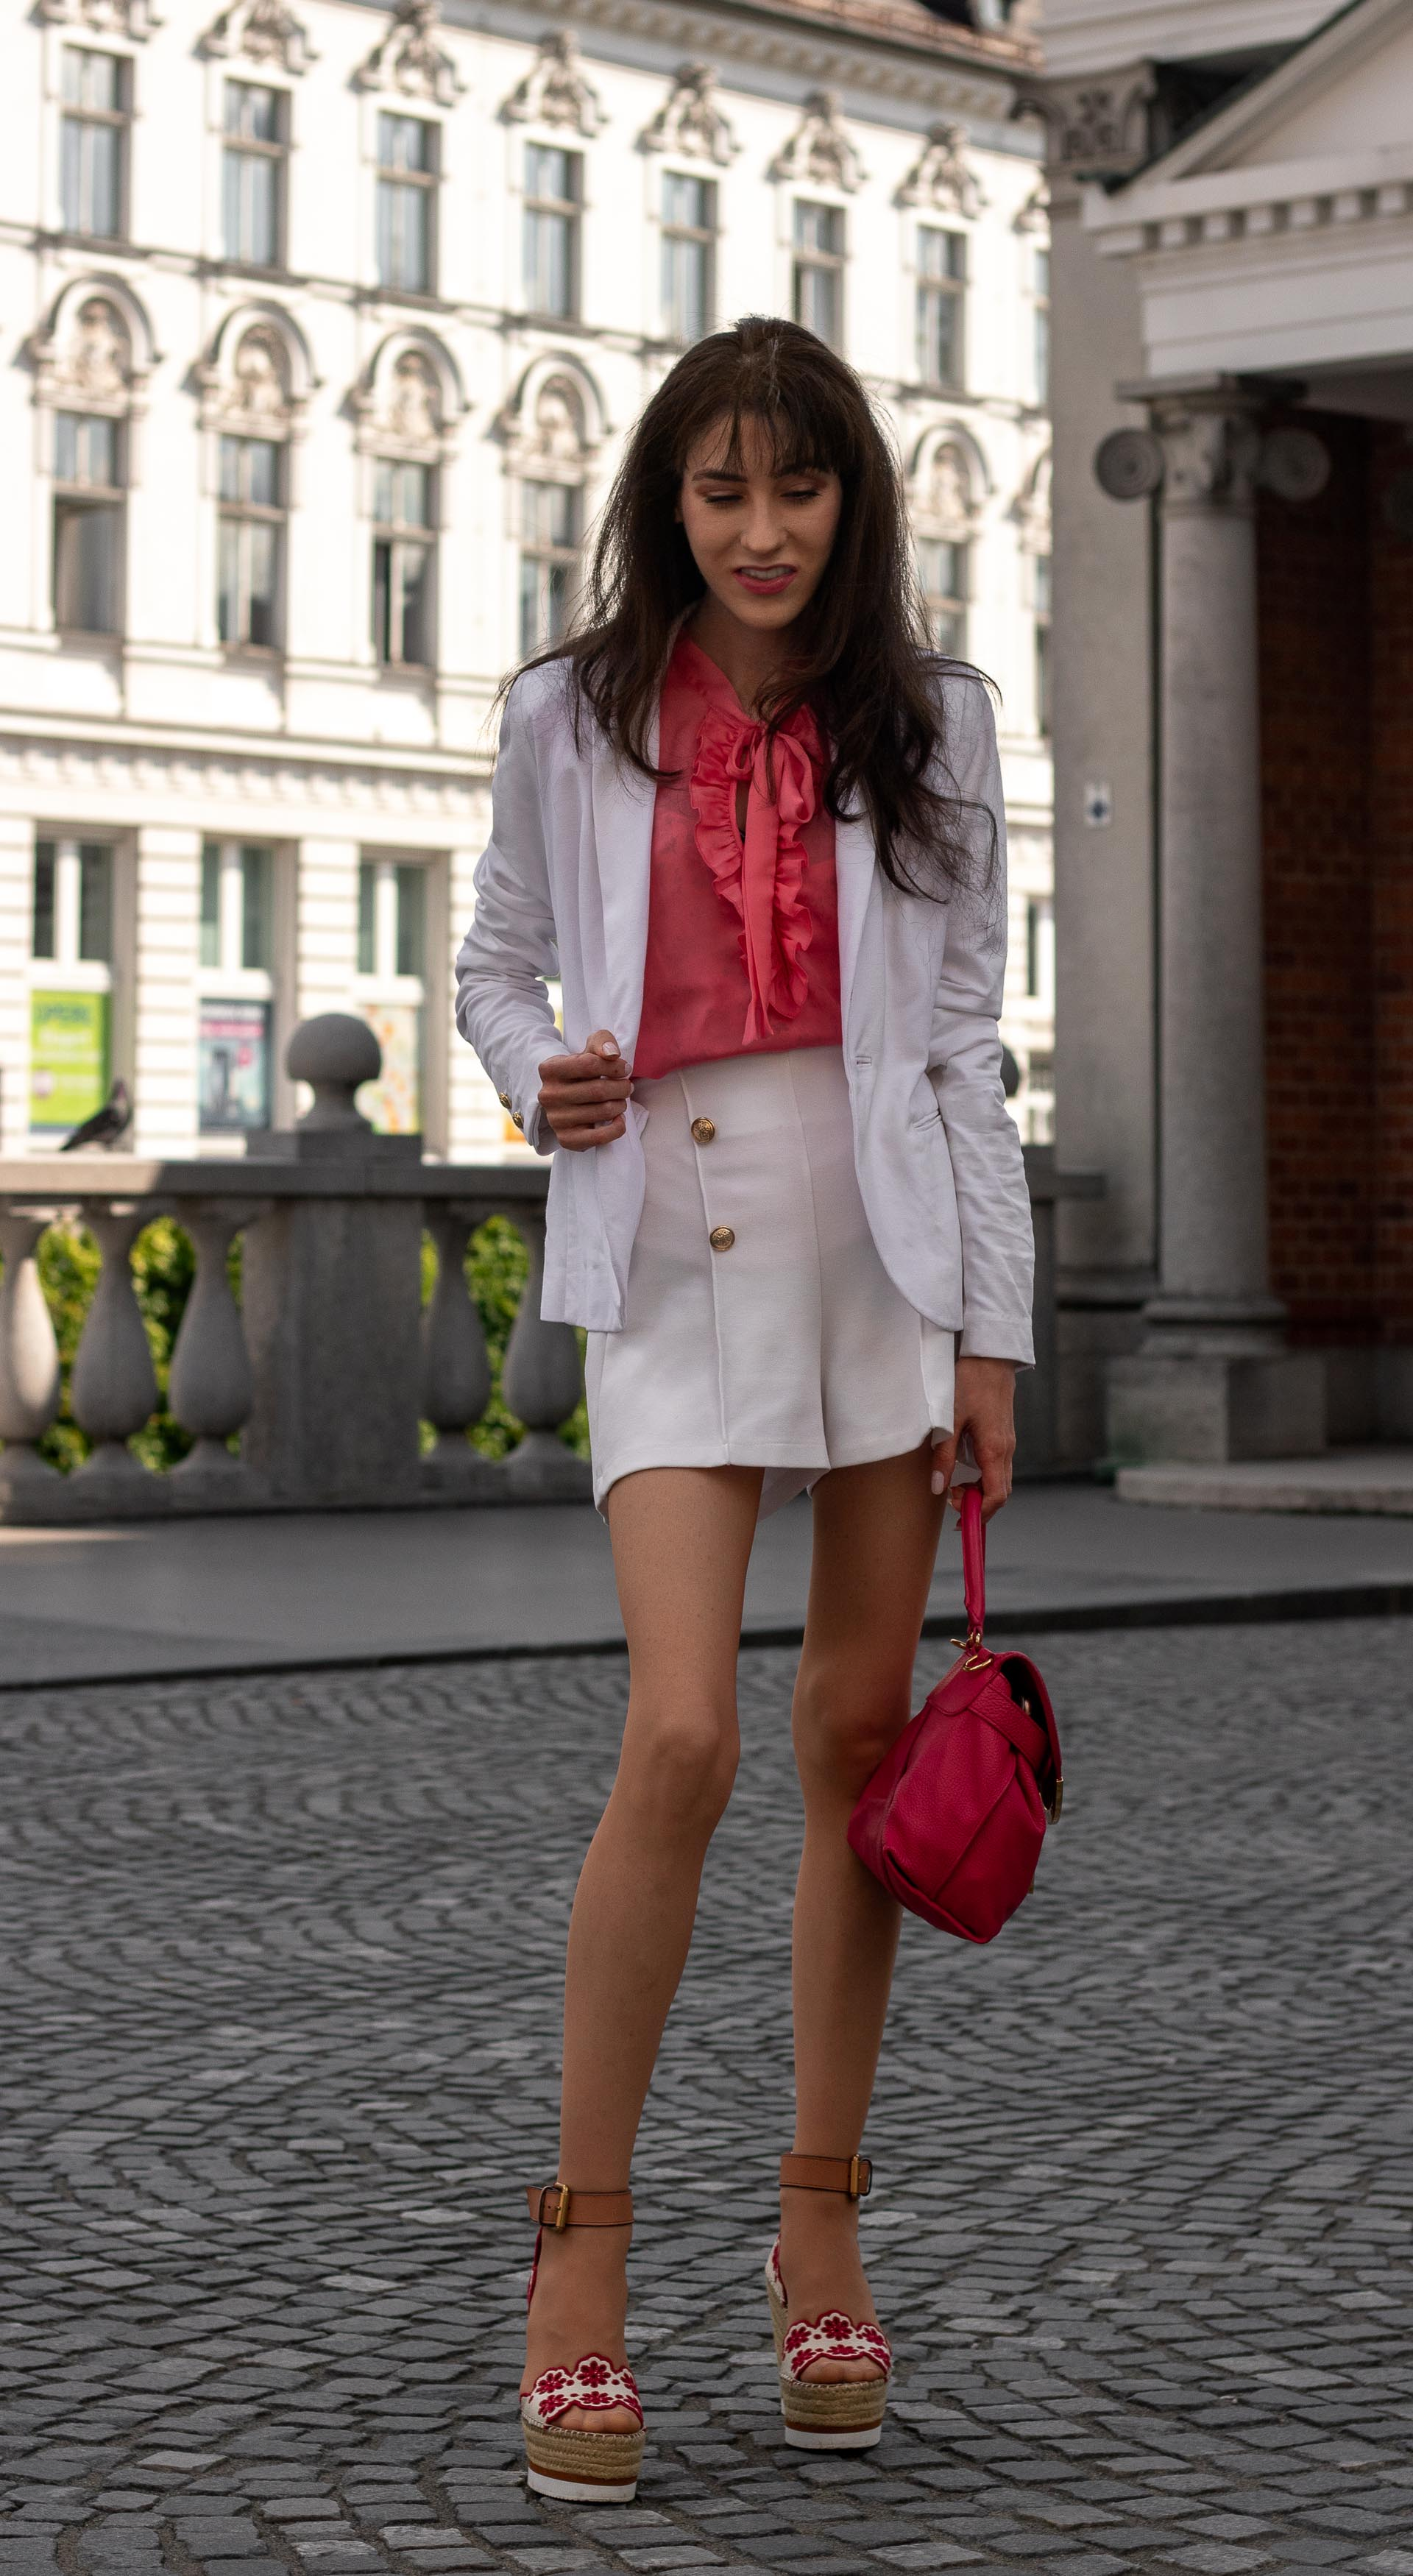 Fashion Blogger Veronika Lipar of Brunette from Wall Street wearing See by Chloé wedge espadrille white shorts white blazer orange pussy-bow blouse pink top handle bag in the city